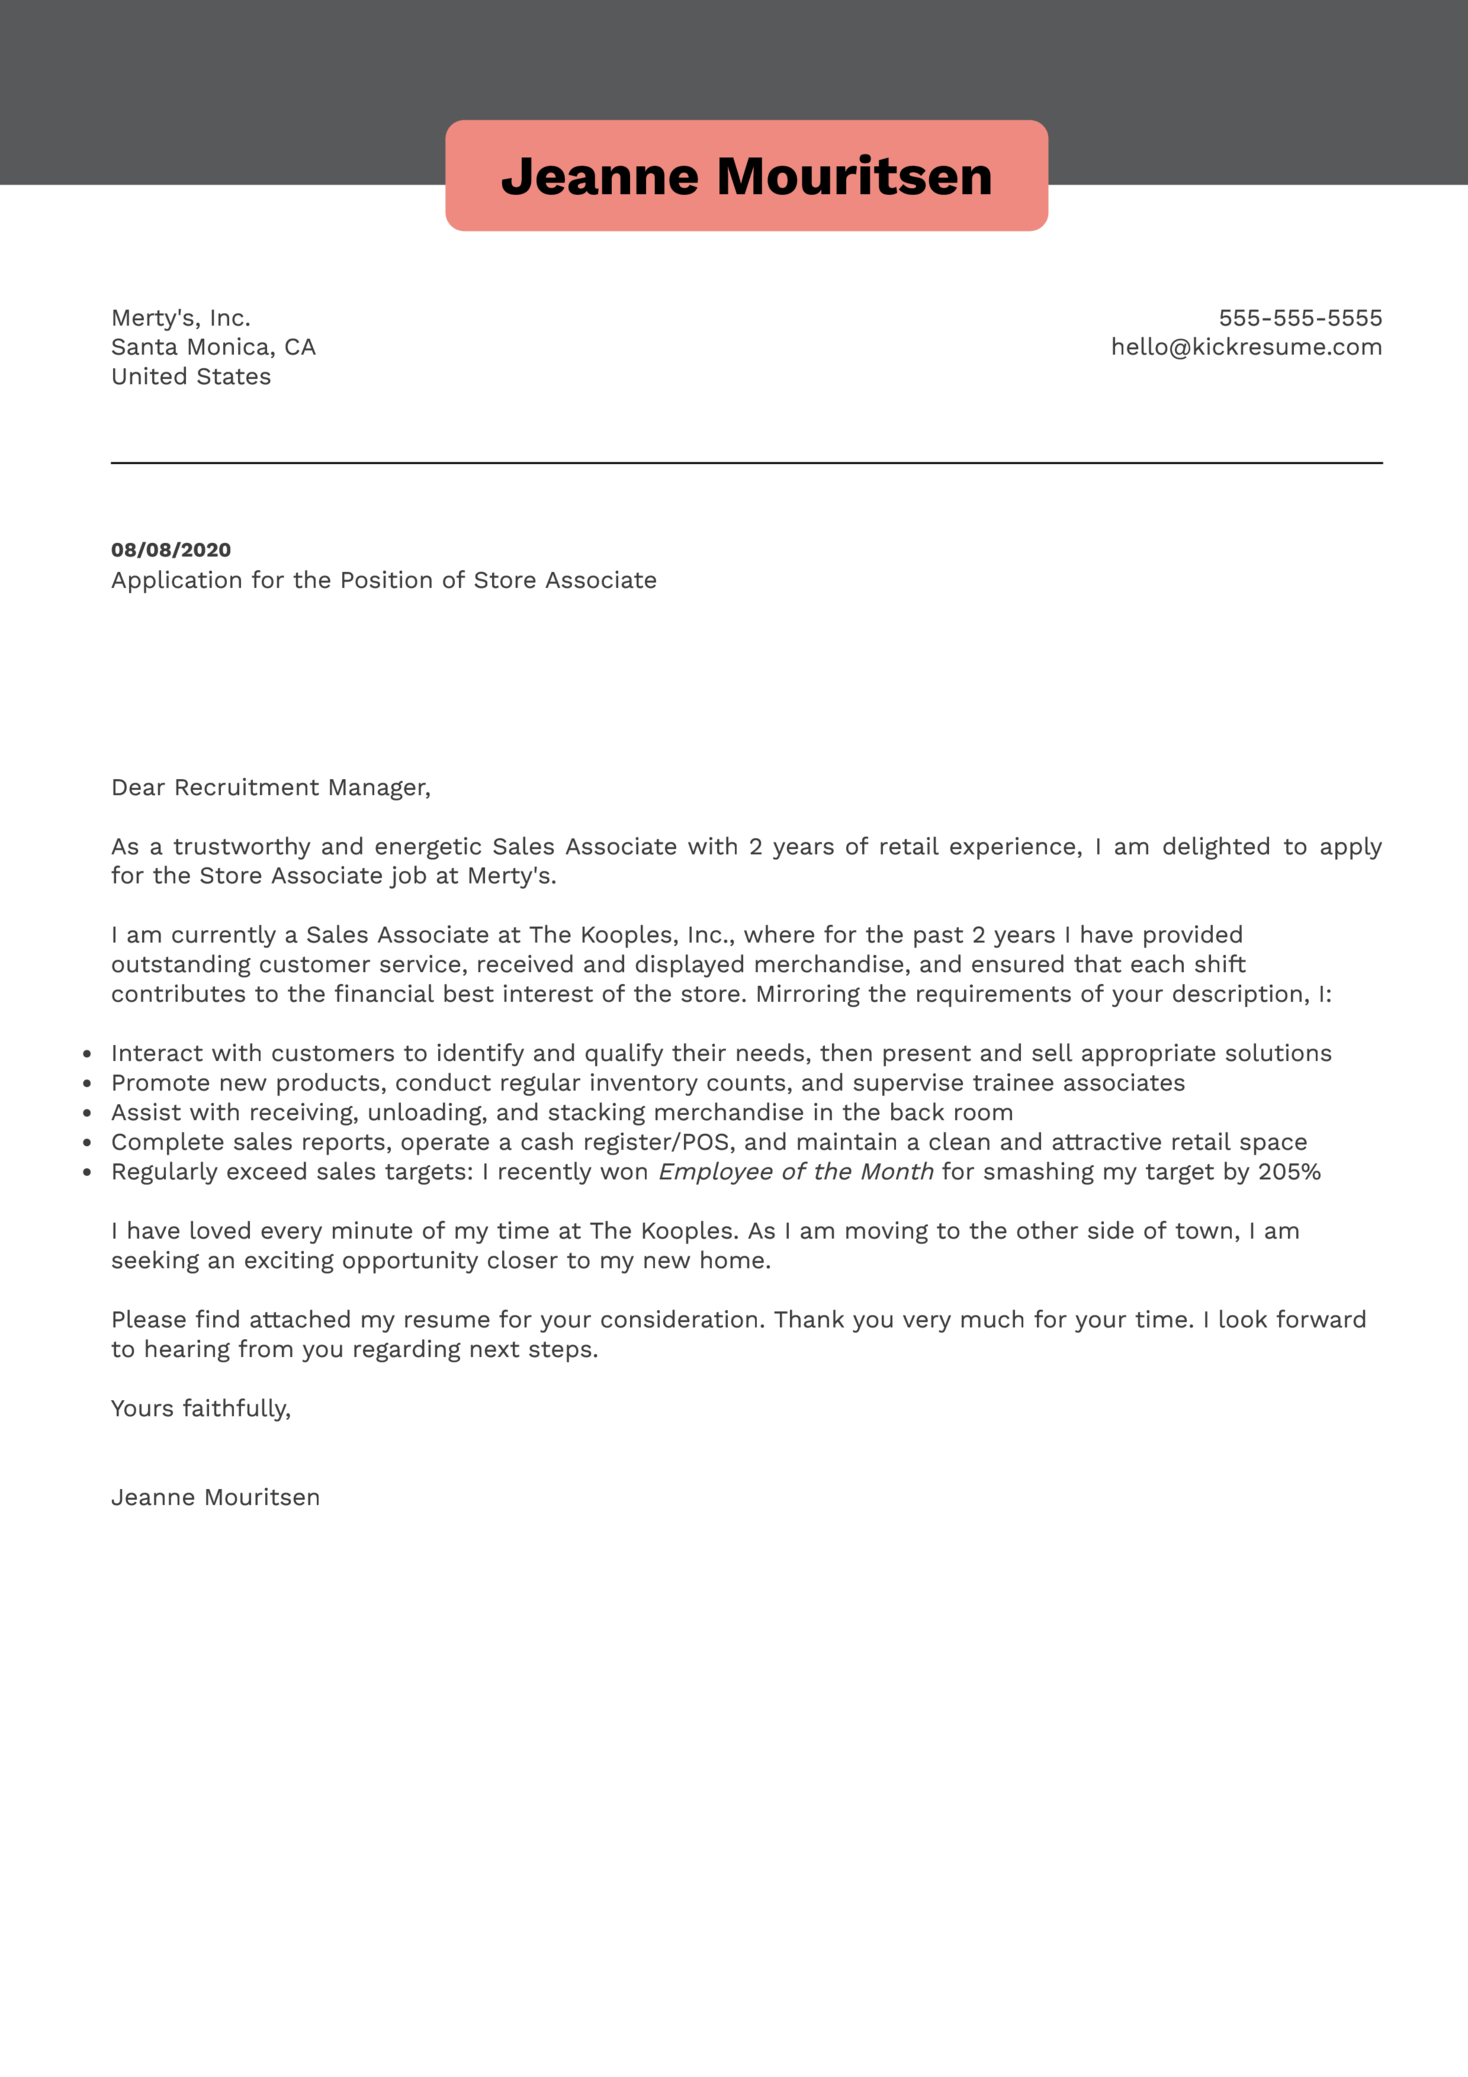 Store Associate Cover Letter Example